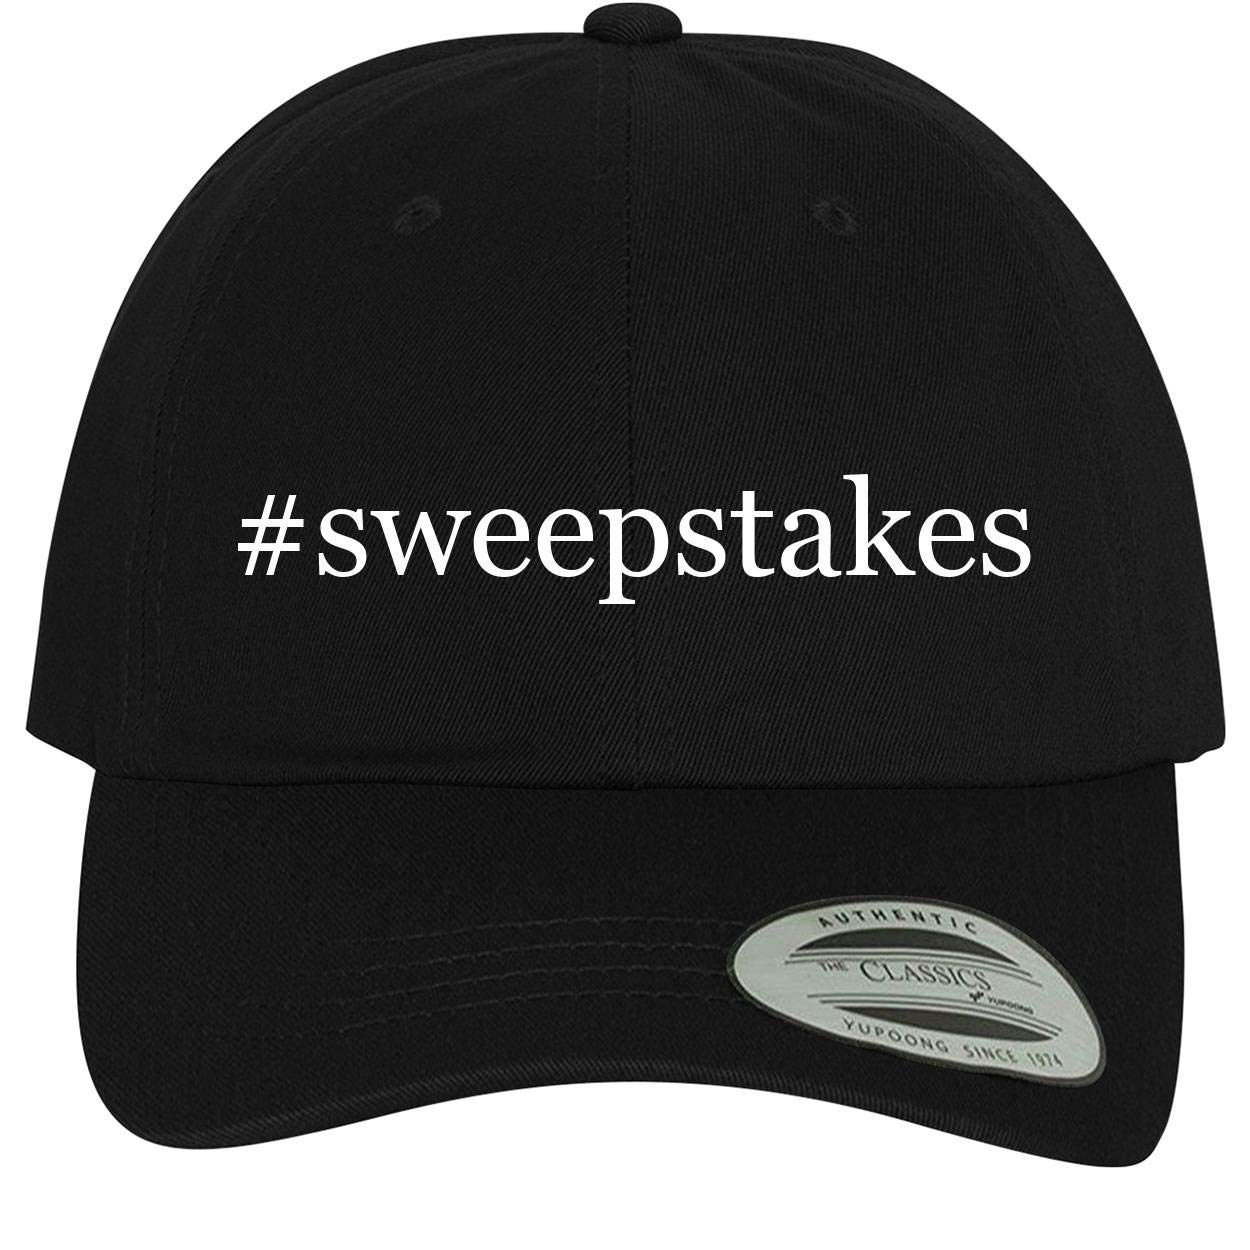 BH Cool Designs #Sweepstakes Comfortable Dad Hat Baseball Cap